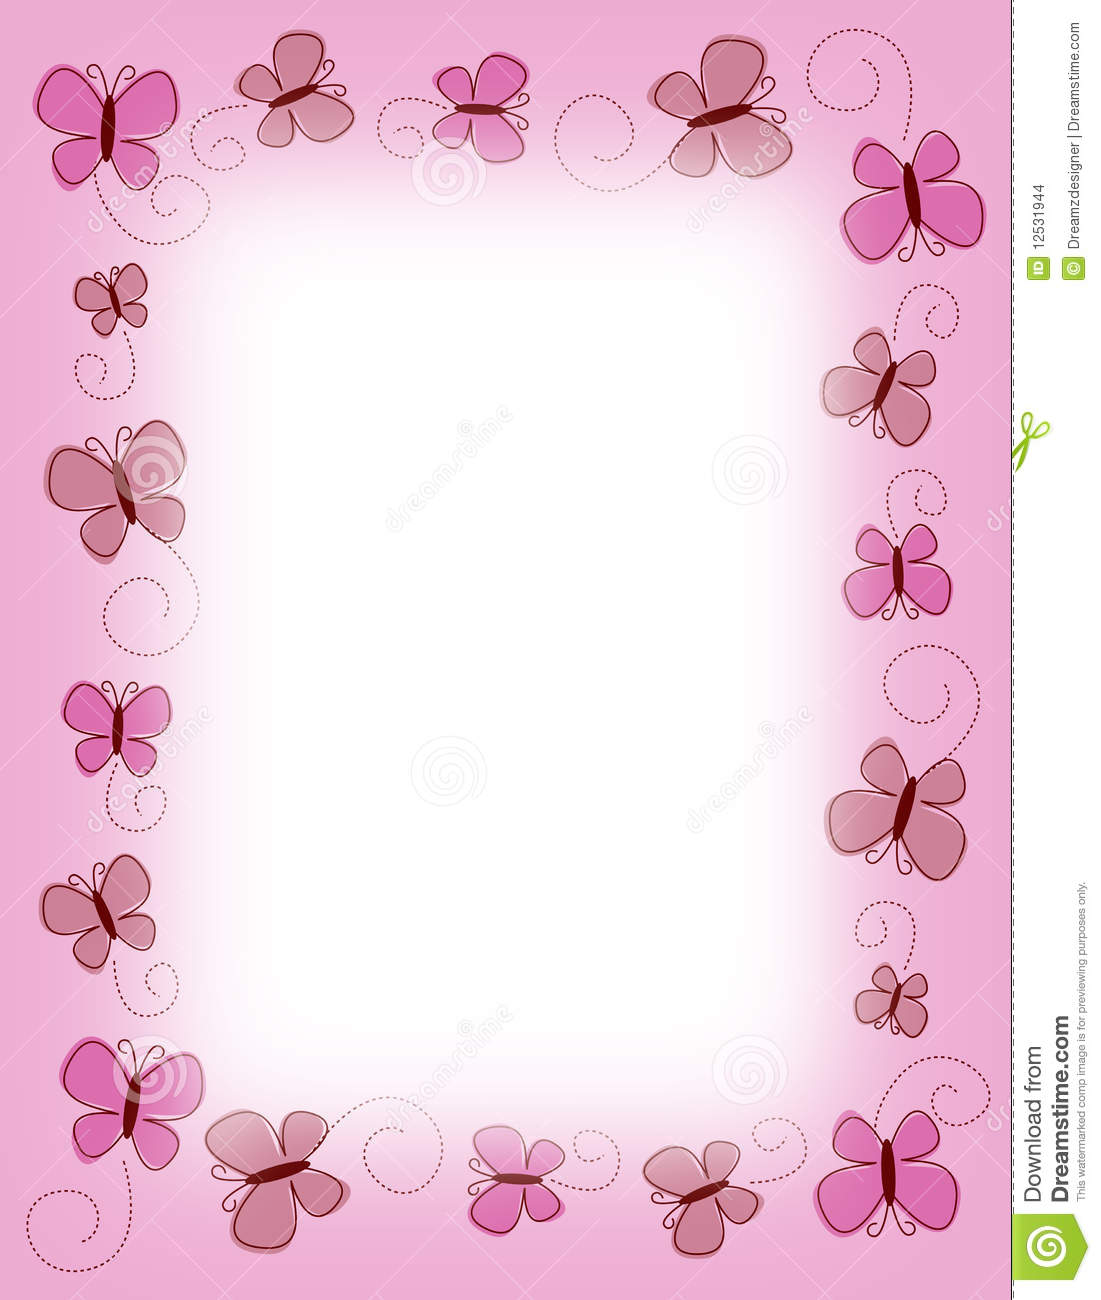 Pink butterfly borders - photo#14